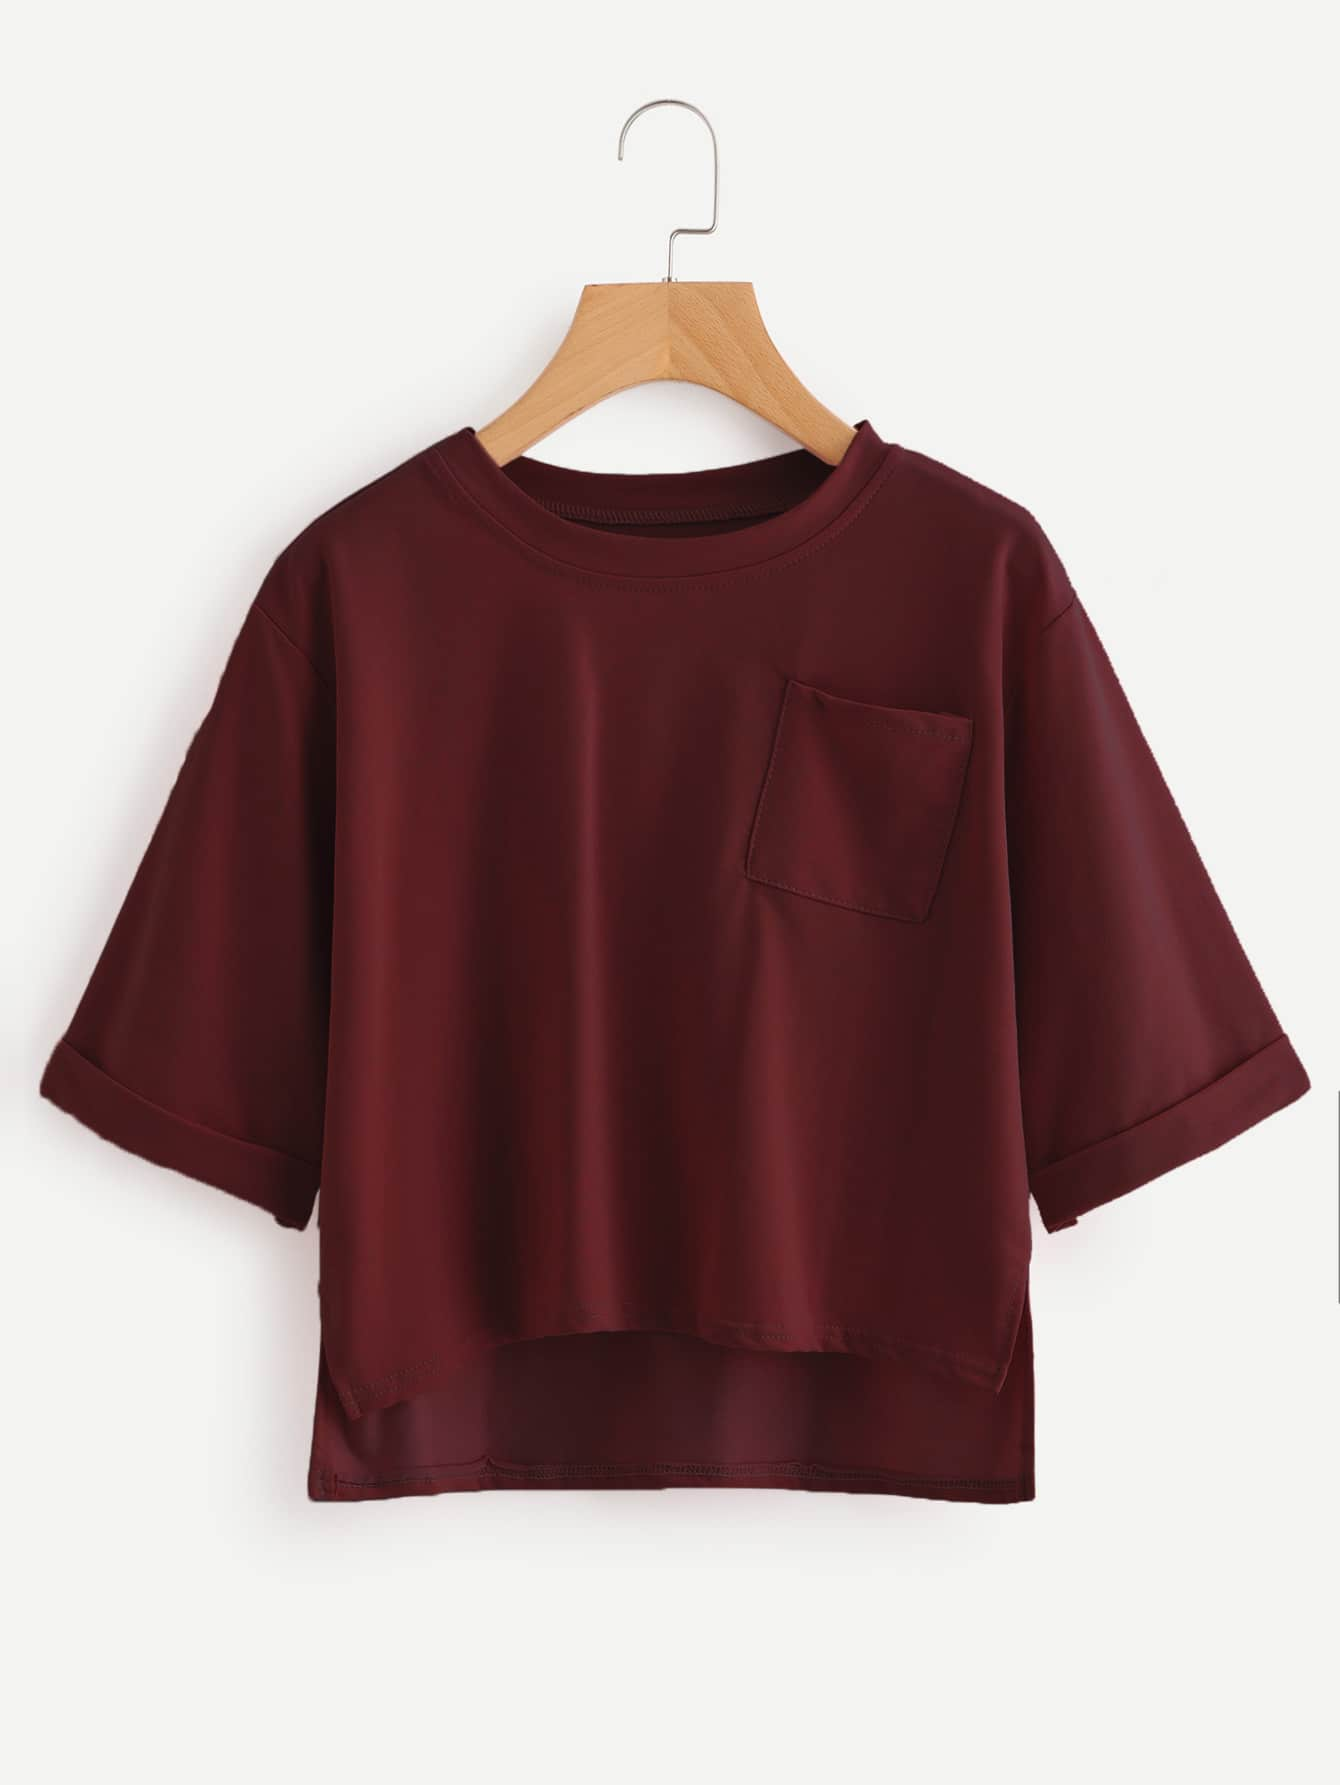 Roll Sleeve High Low Tee long sleeve high low lace insert tee